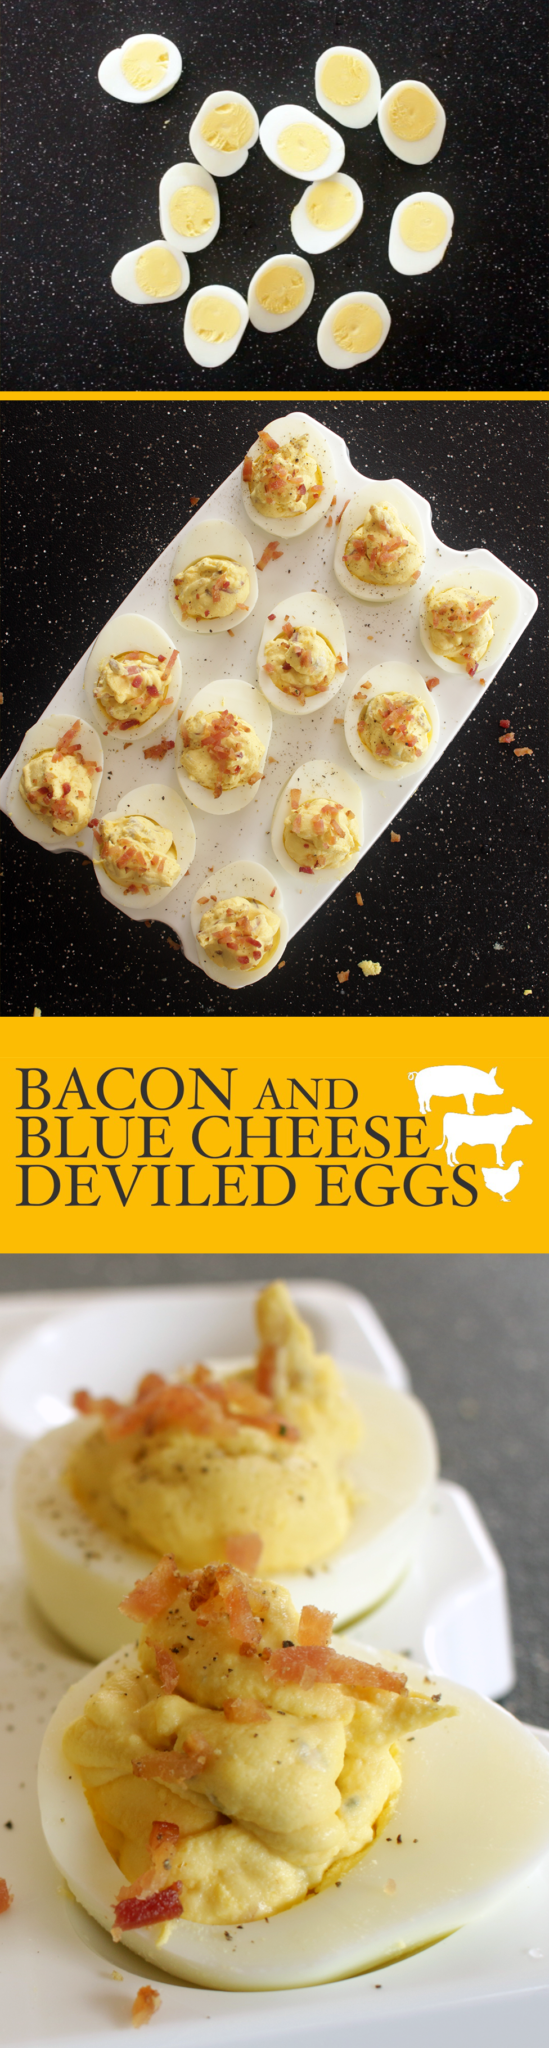 bacon-blue-cheese-deviled-eggs